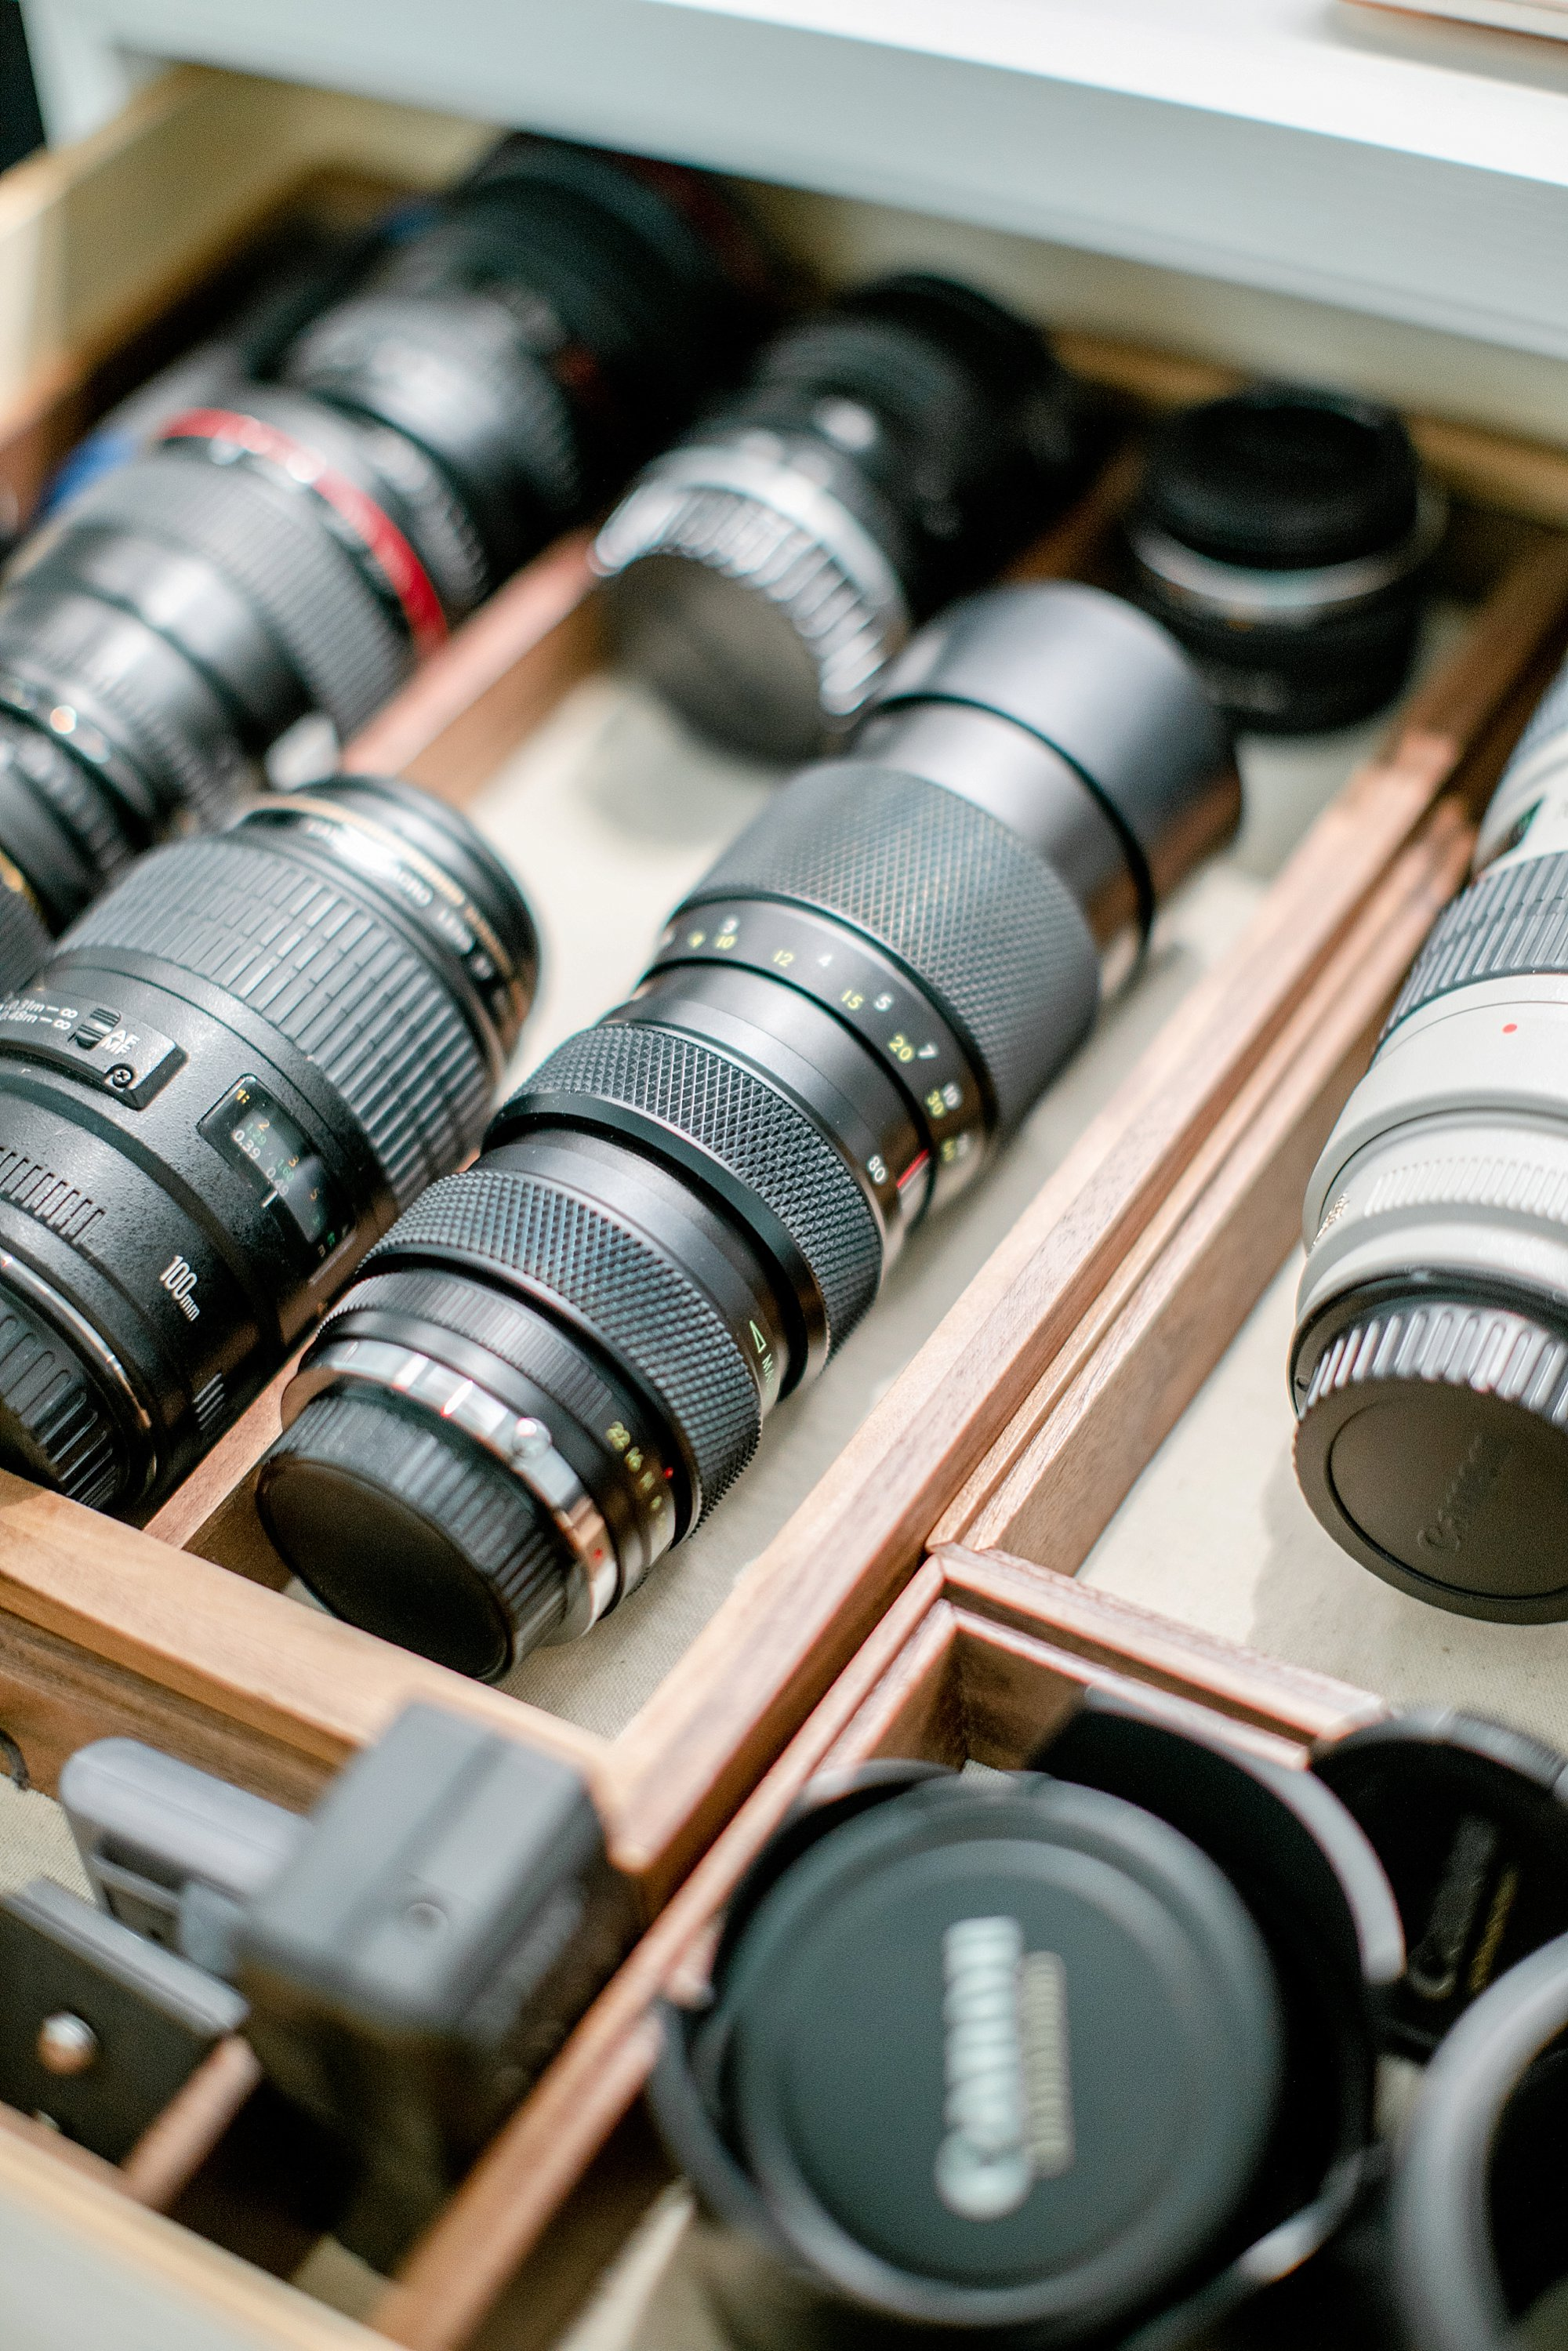 camera lens drawer organization for photographers, check out the office closet reveal to organize camera equipment #photography #office #closet